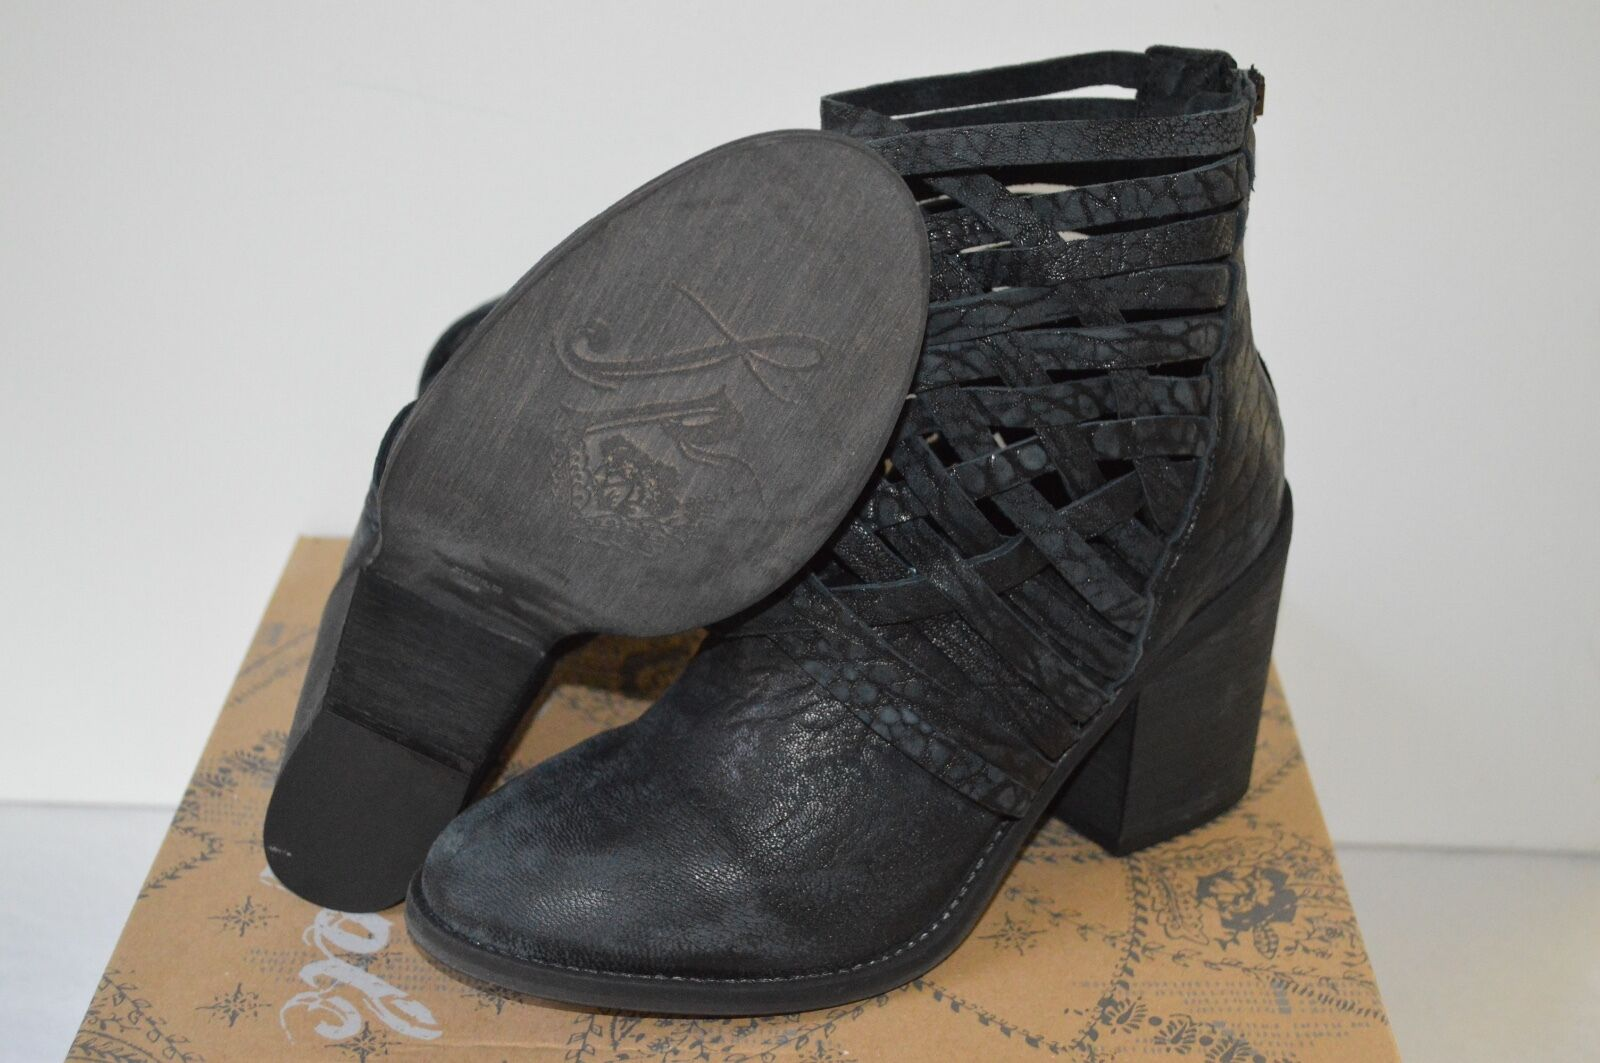 New  198 Free People Carrera Heel Bootie Bootie Bootie Boots Ankle Short Black Leather SoldOut 4b0561